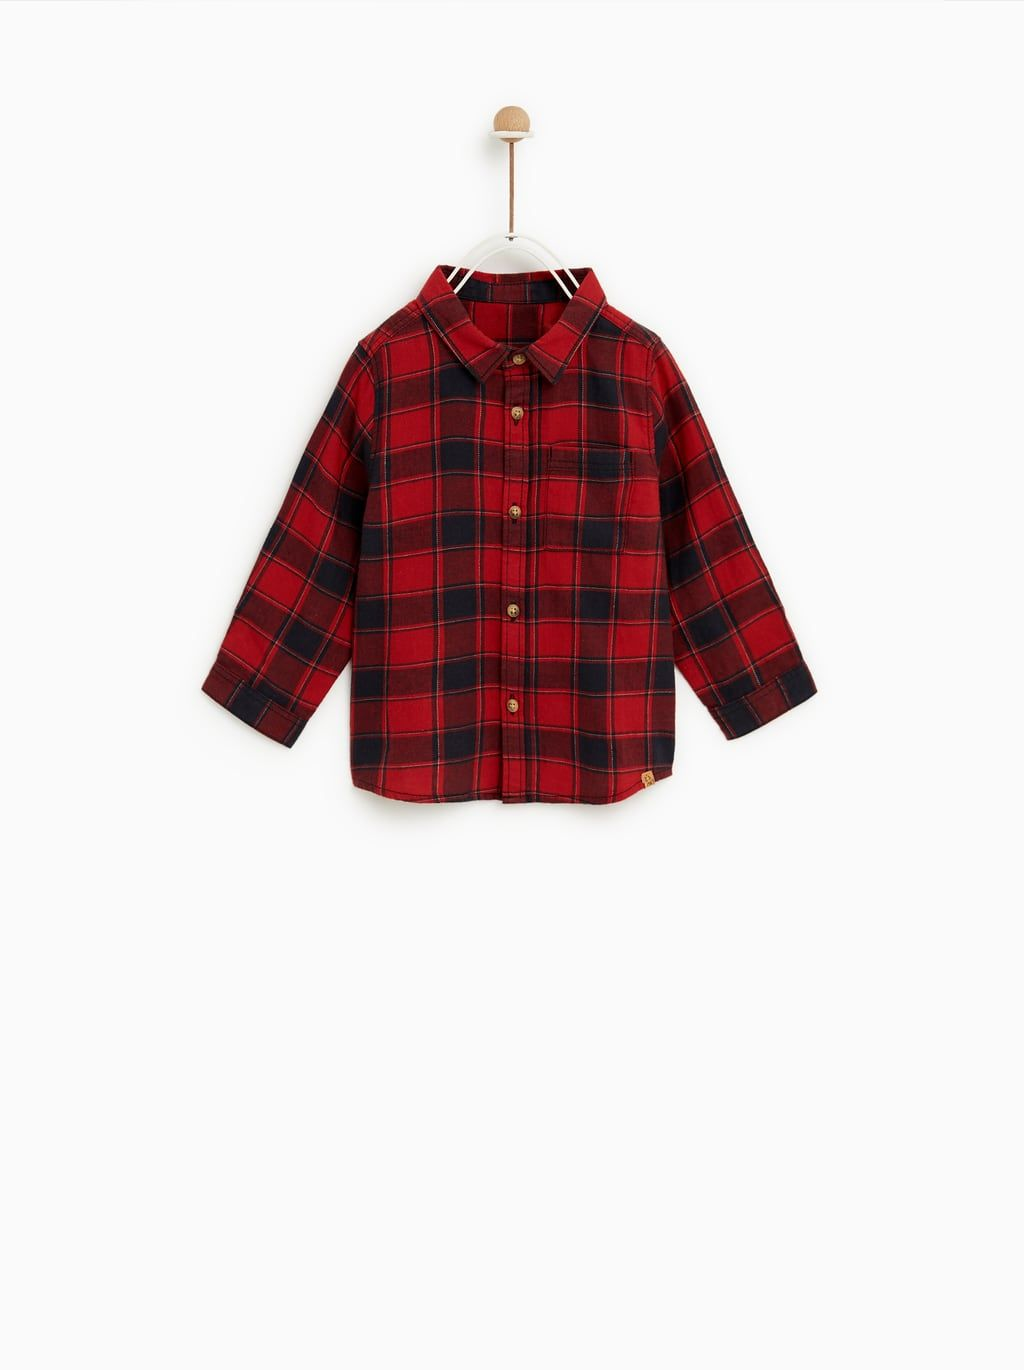 198a5c5f67f5 PLAID SHIRT - Item available in more colors